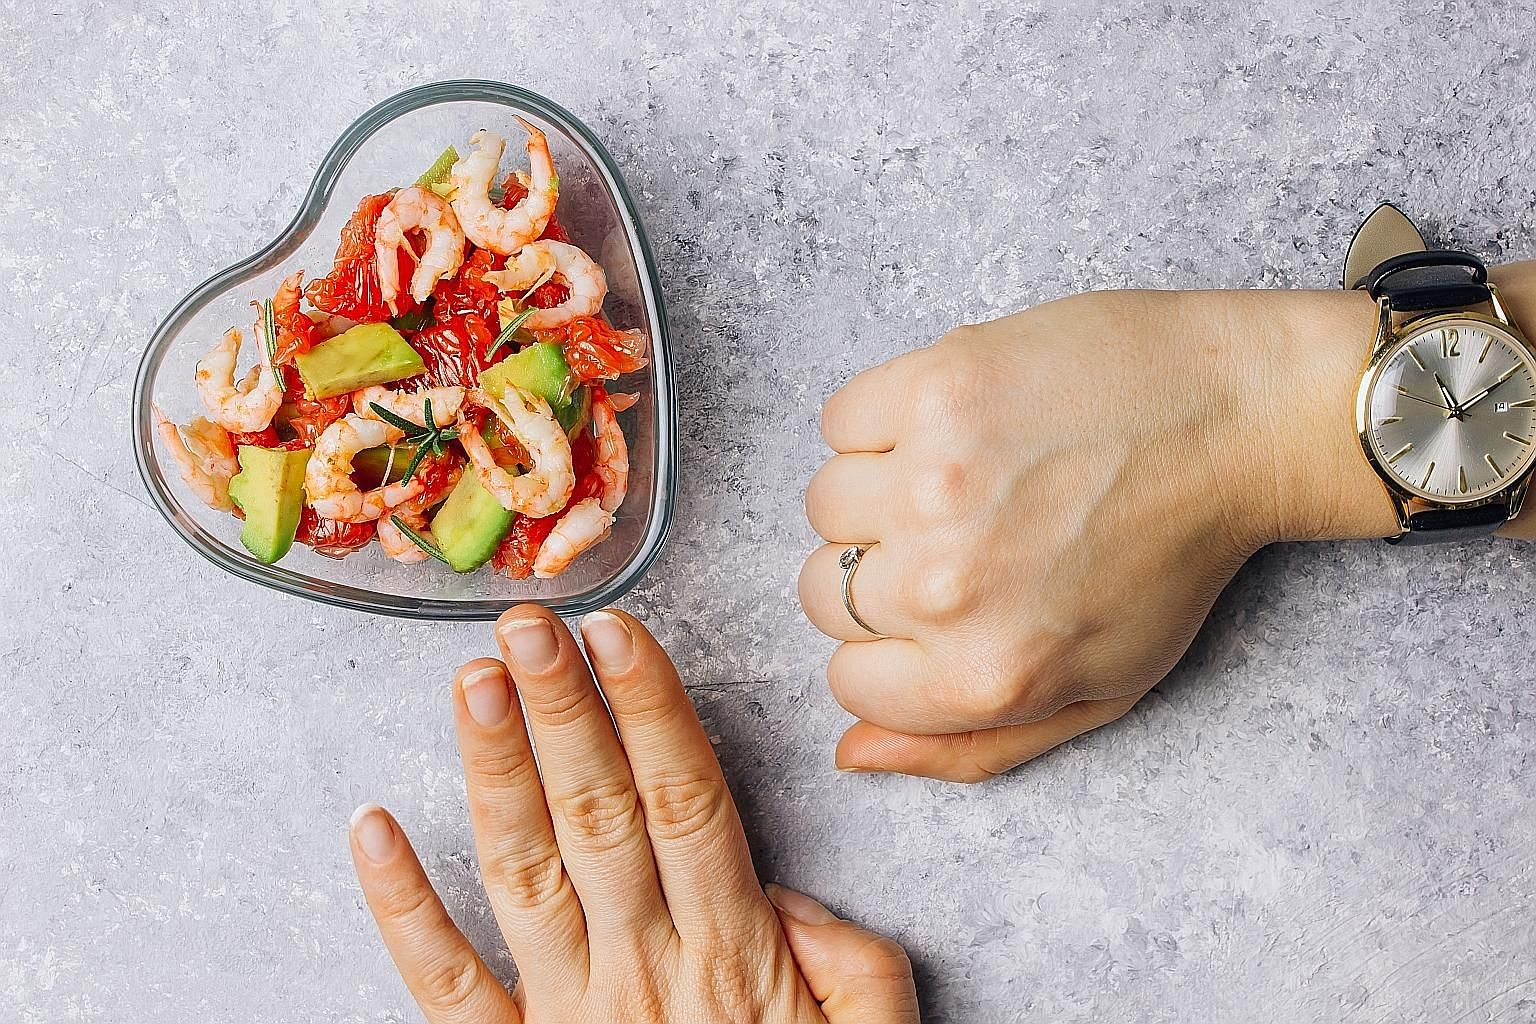 A popular approach to intermittent fasting is to limit eating to an eight-hour window and fast during the day's other 16 hours, which could include the time a person is asleep.